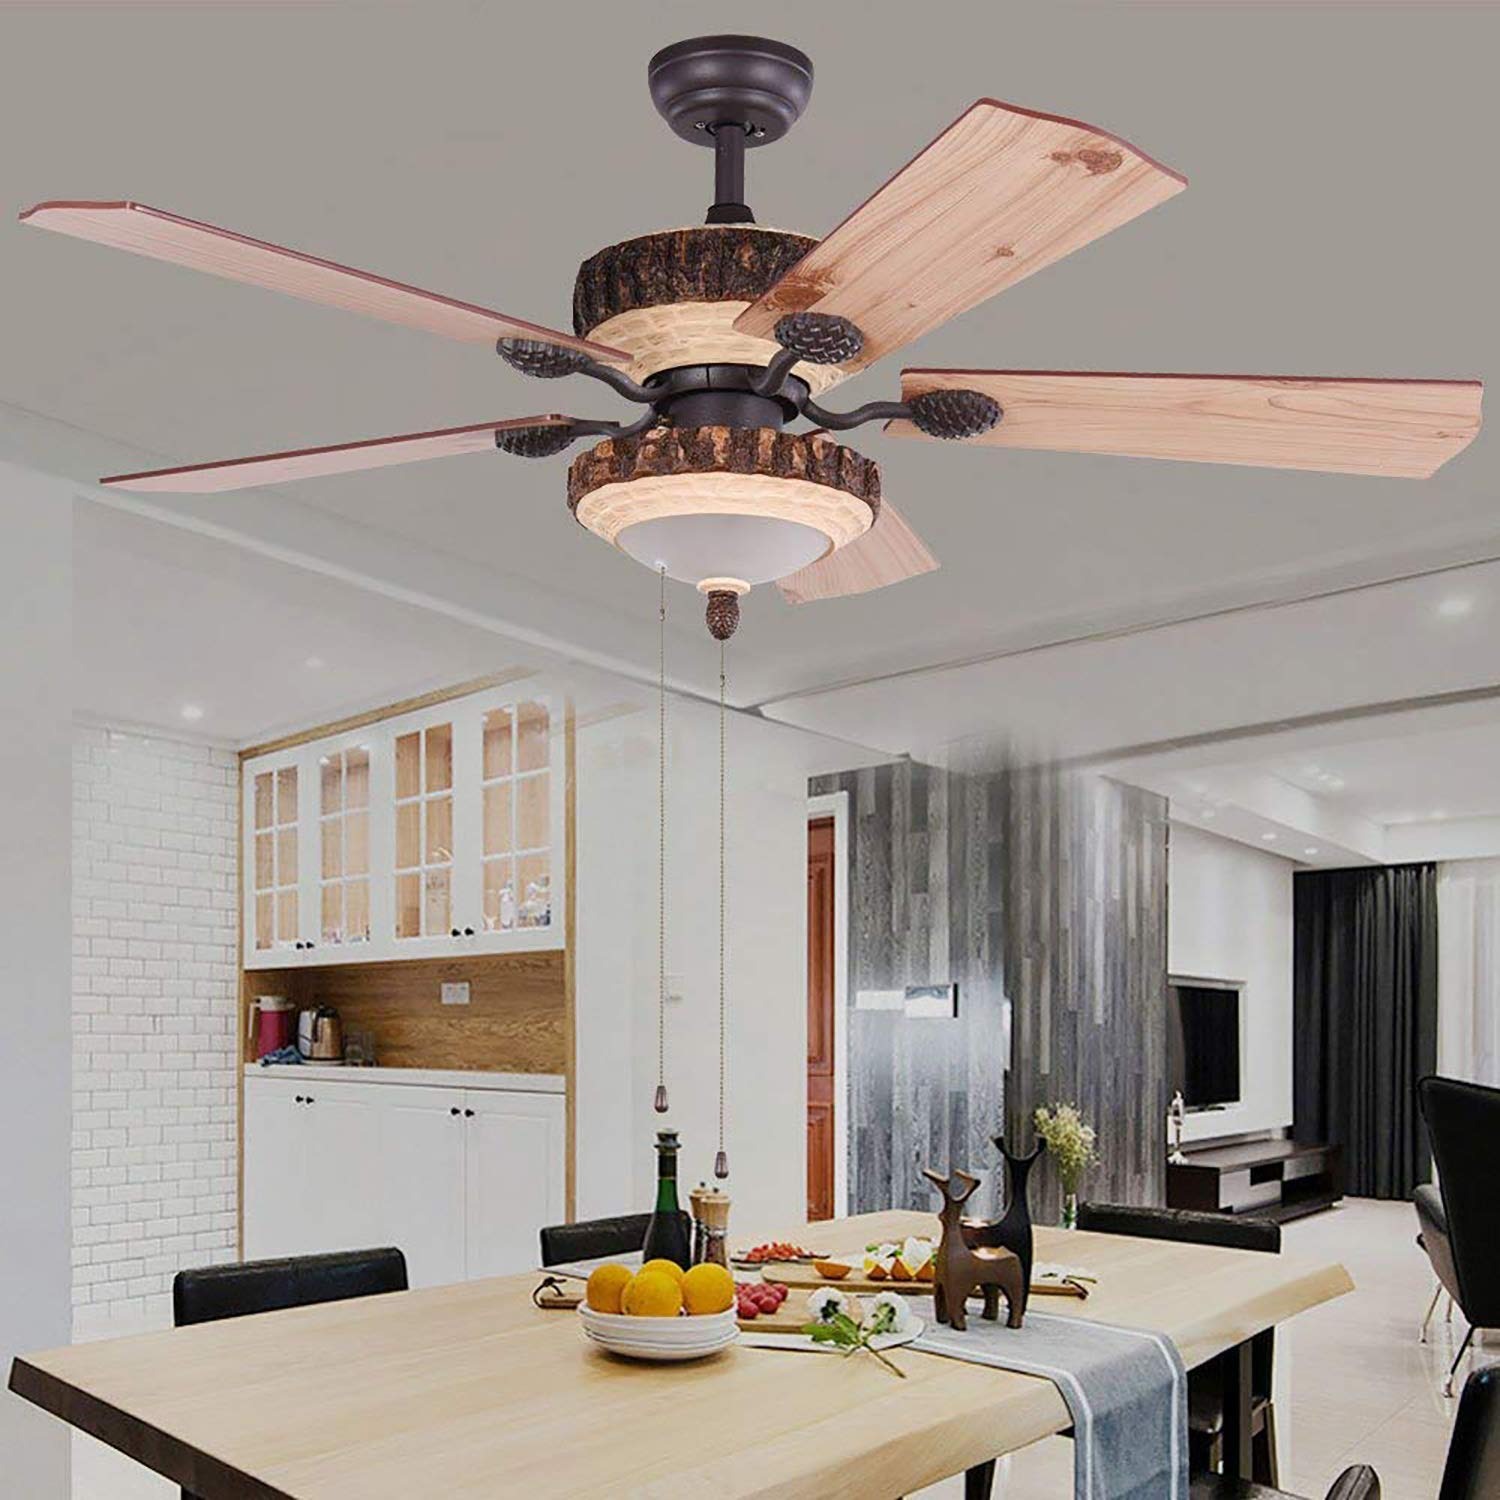 52 Inch Rustic Ceiling Fan With Lights and Remote Silent Fans Chandelier With 1 Resin 5 Reversible Wood Blades For Living Room Bedroom